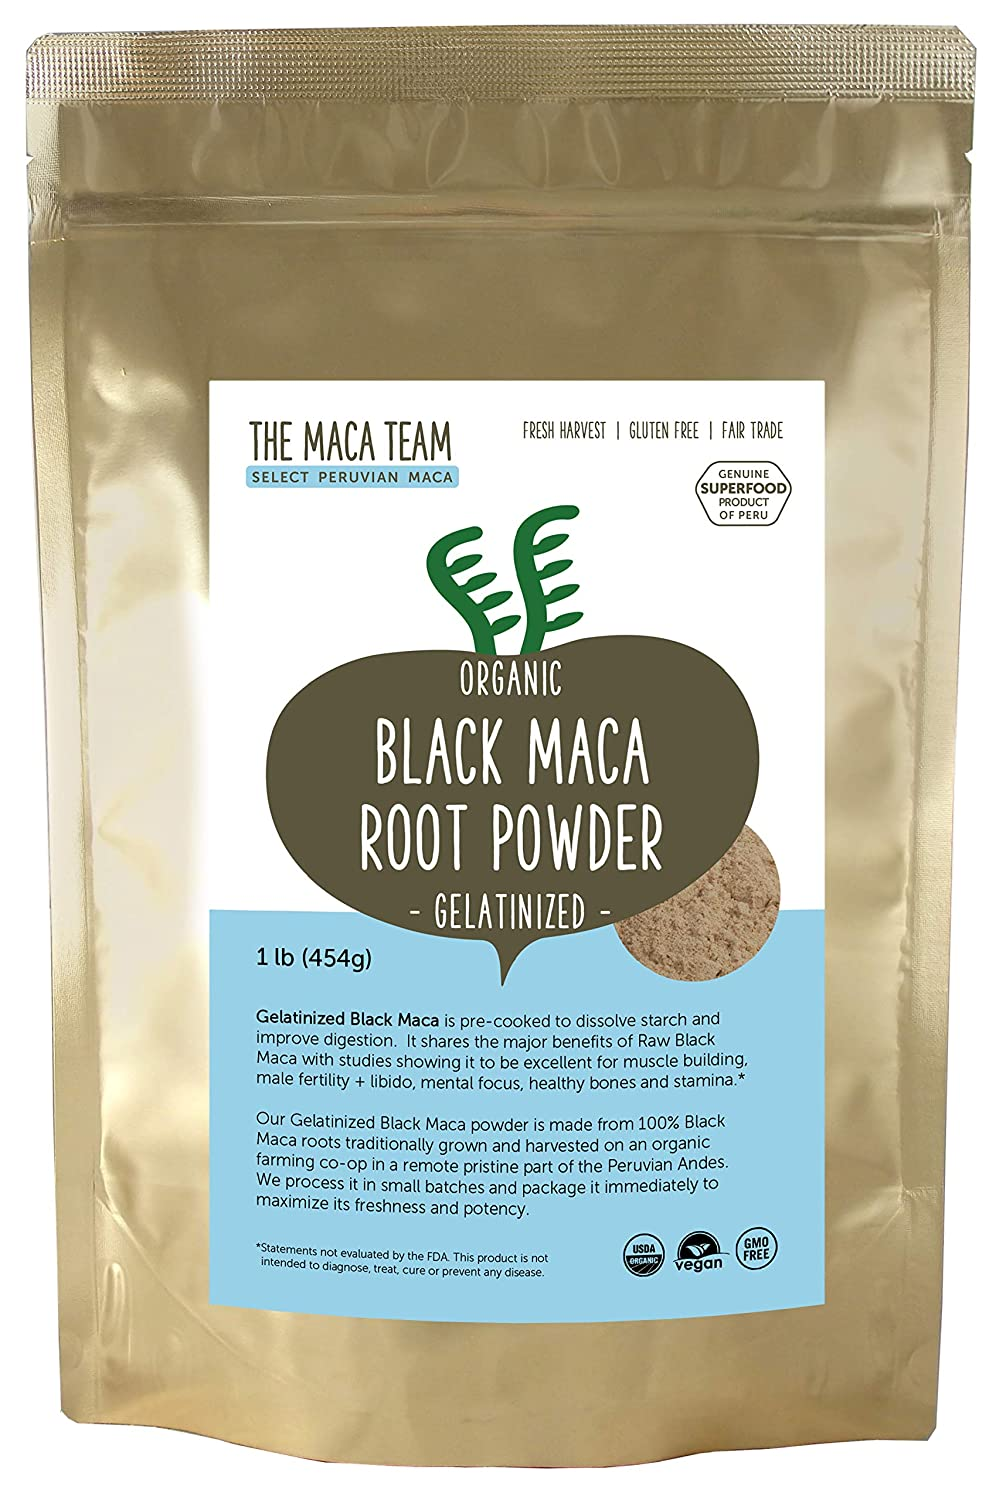 The Maca Team Gelatinized Black Maca Powder, Fair Trade, Vegan, GMO-Free, Premium Maca, 1 Pound, 50 Servings